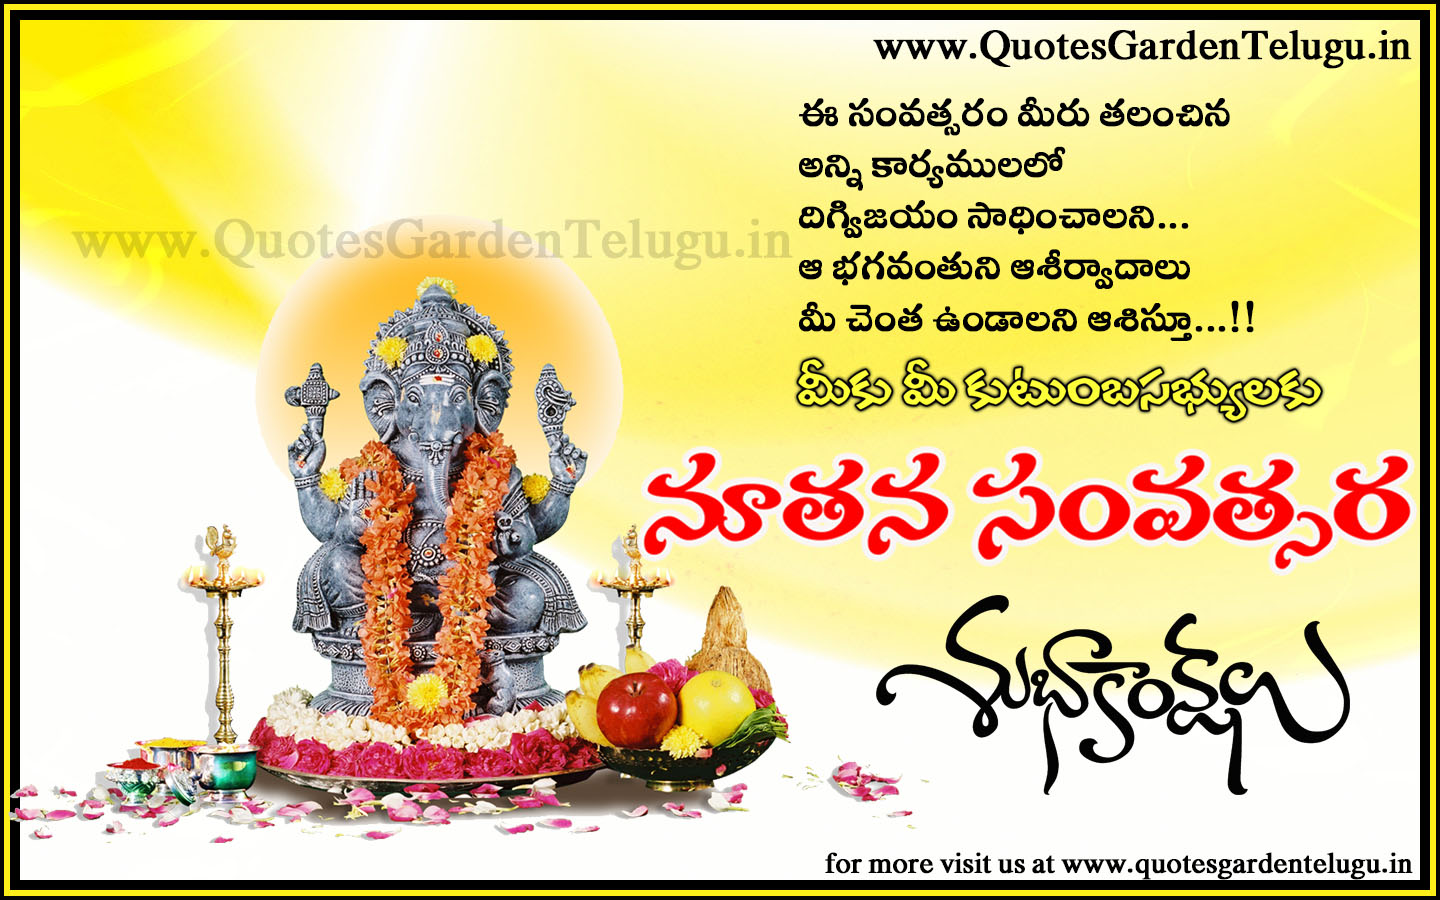 happy new year 2017 telugu greetings messages with god images wallpapers